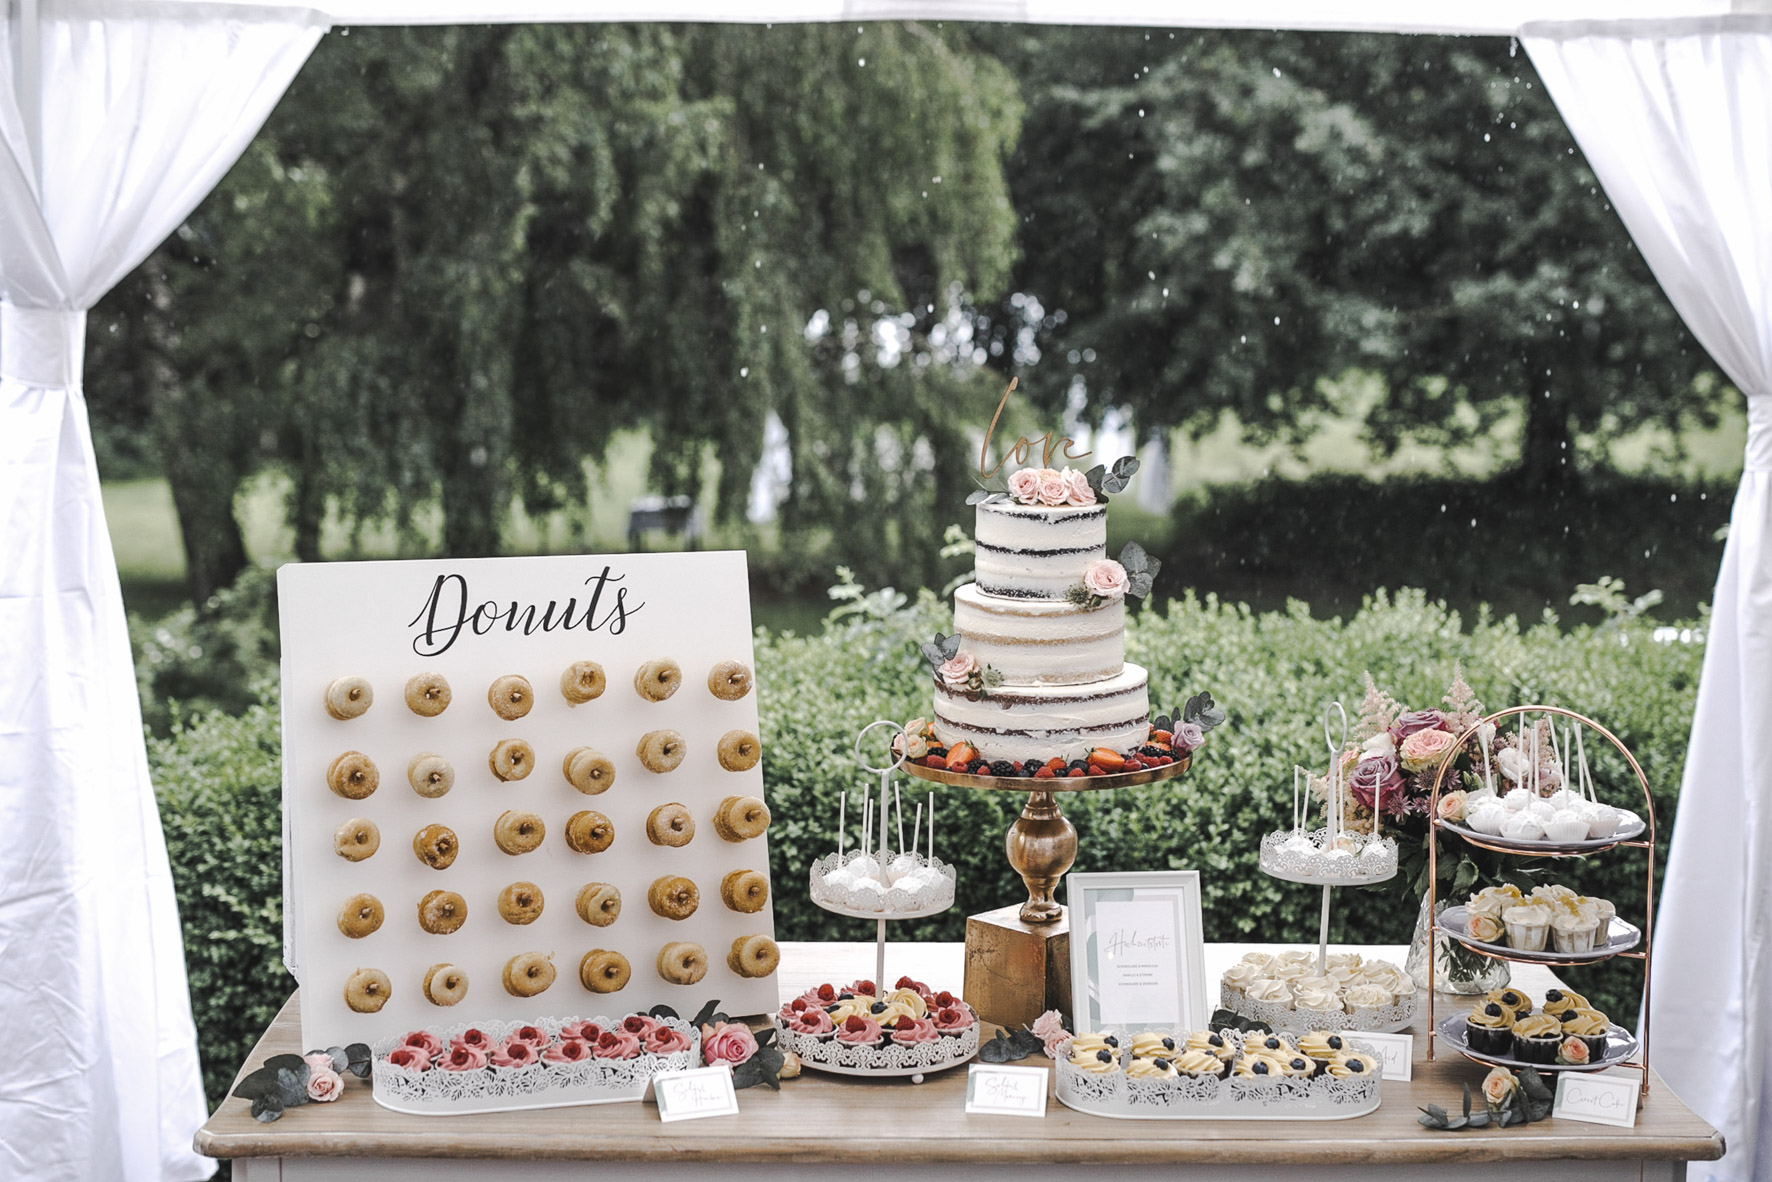 Regen Hochzeit Glanzmomente Sweet Table